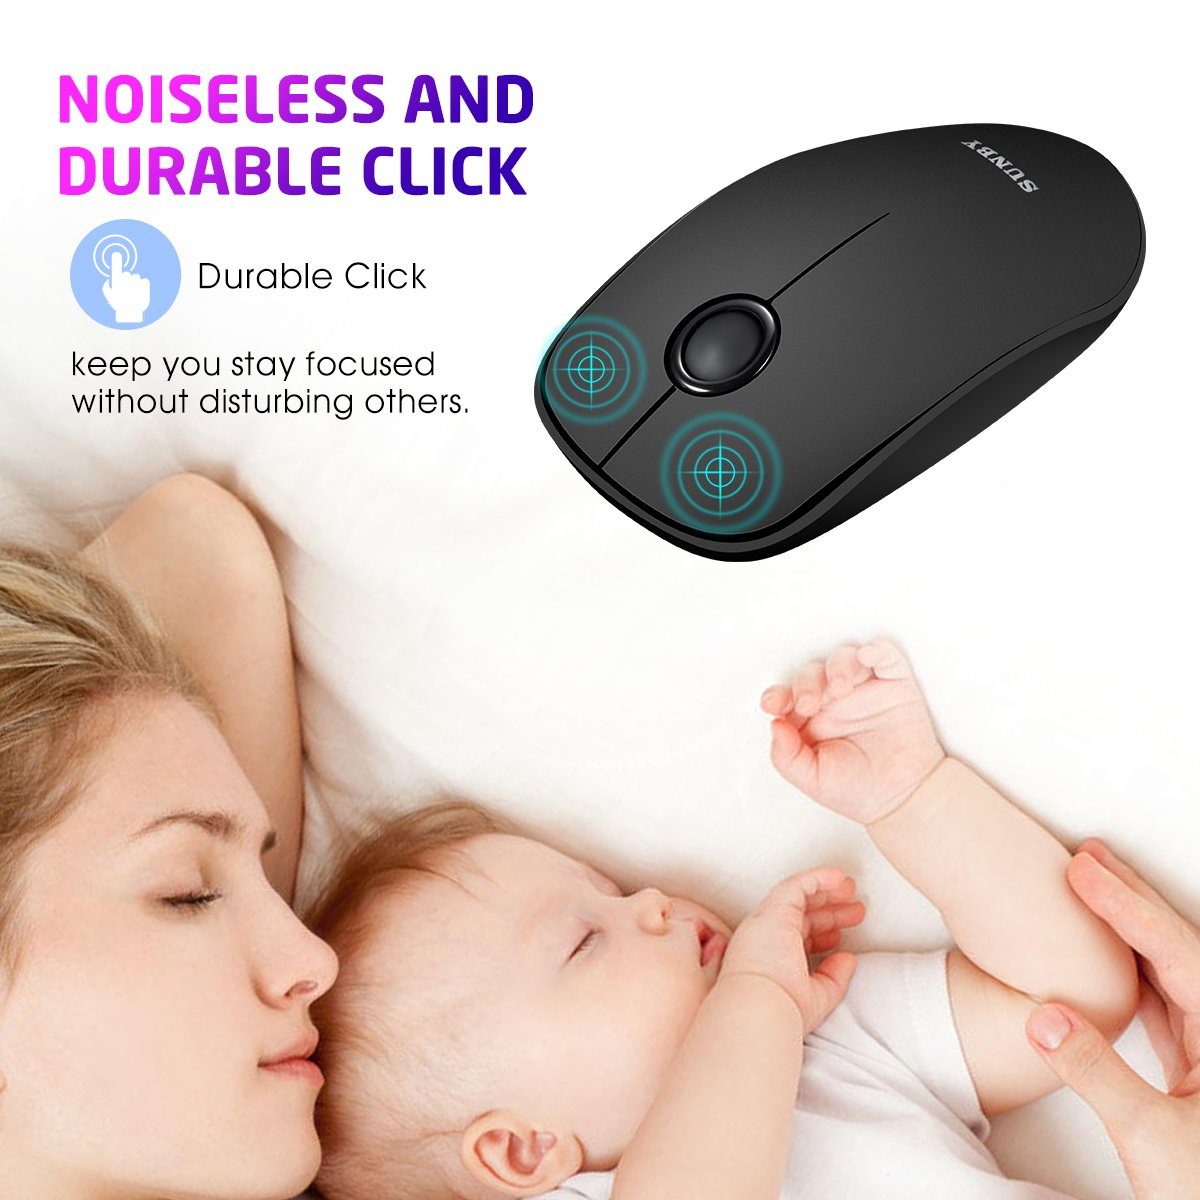 Slim Wireless Mouse,2.4G Ultra Thin Computer Mouse With Nano Receiver, Noiseless and Silent Click ,Travel Portable Mice for Laptop,Mac,Notebook,PC and Tablet (1 Battery For Bonus)